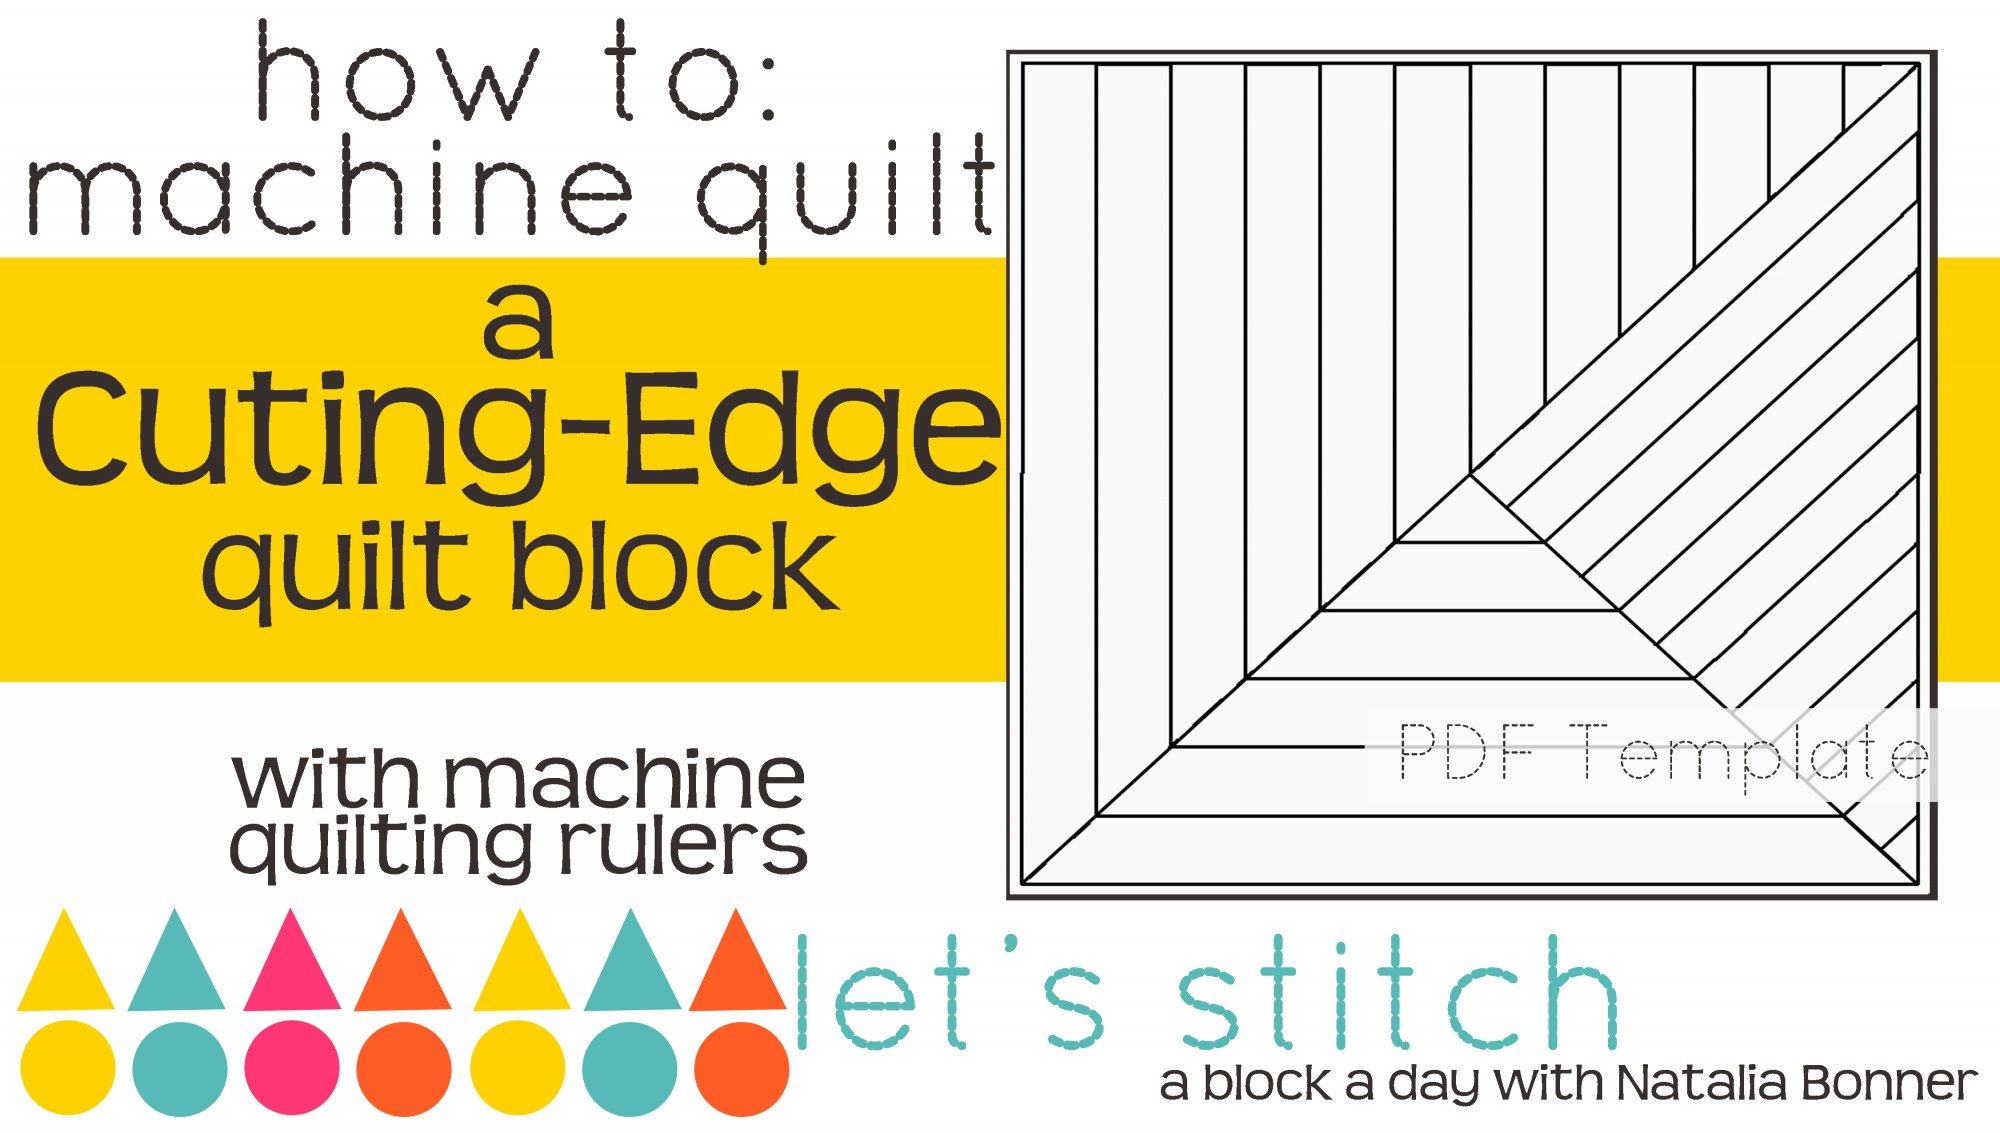 Let's Stitch - A Block a Day With Natalia Bonner - PDF - Cutting-Edge